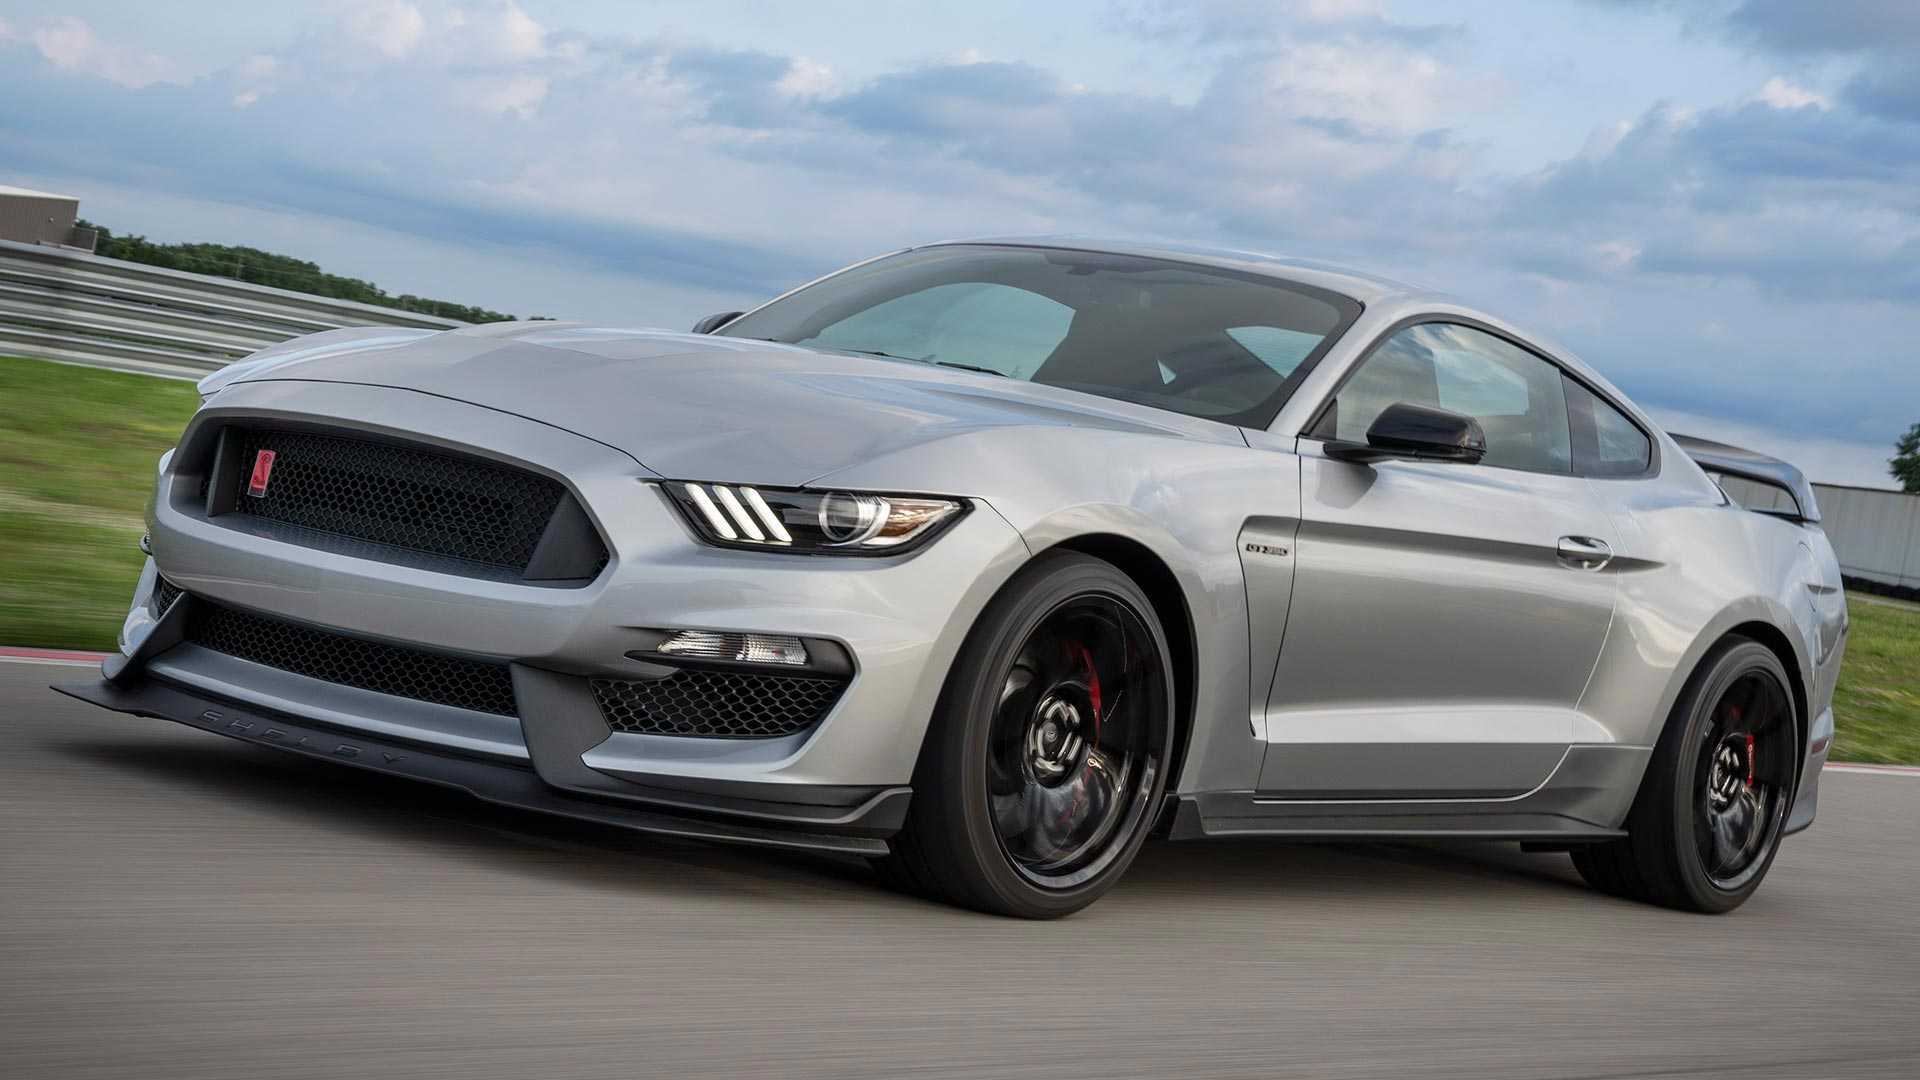 2020 Ford Mustang Shelby GT350R Front Three-Quarter Wallpapers (1)